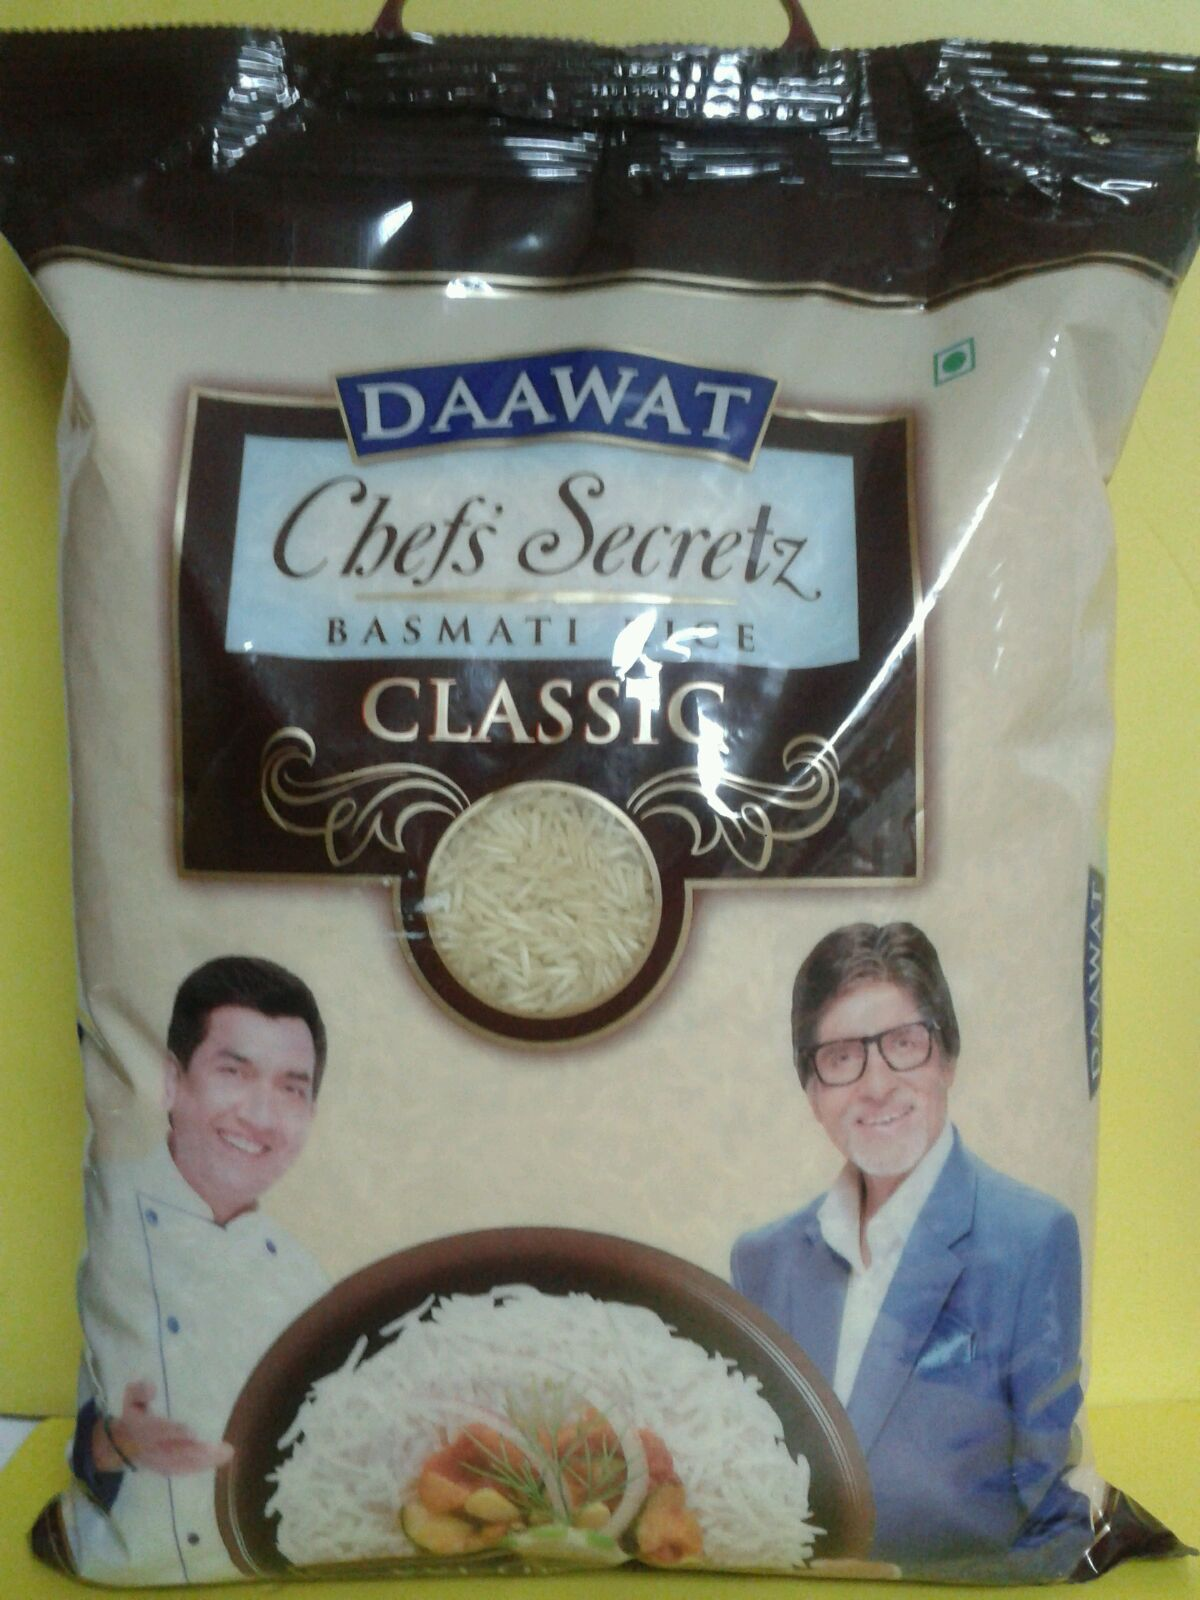 BASMATI RICE, DAAWAT CHEF'S SECRET CLASSIC - 5KG [ A17 ]